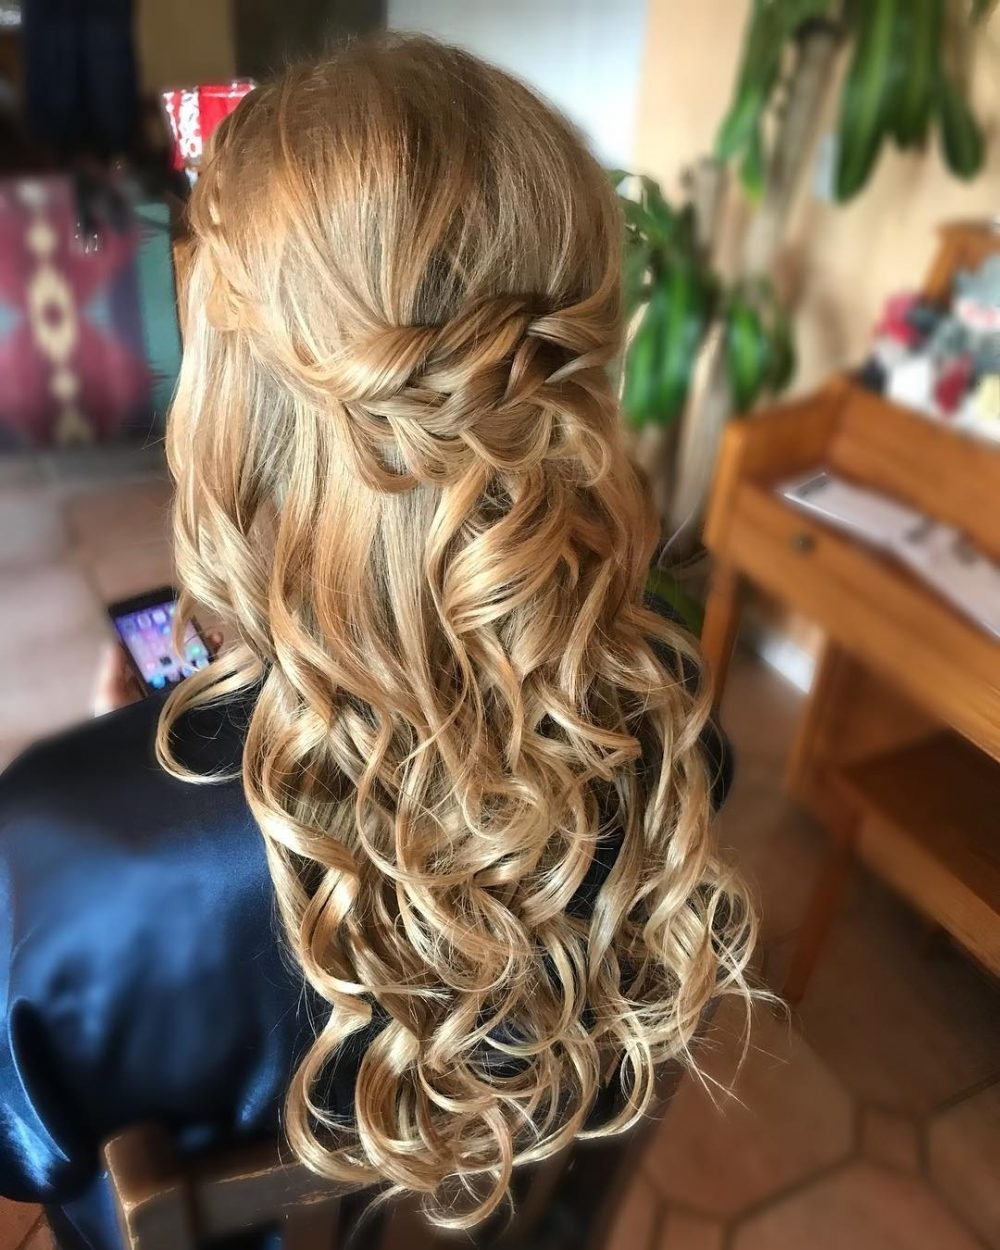 Wedding Hairstyles For Long Hair: 24 Creative & Unique Wedding Styles Intended For 2017 Long Wedding Hairstyles (View 14 of 15)